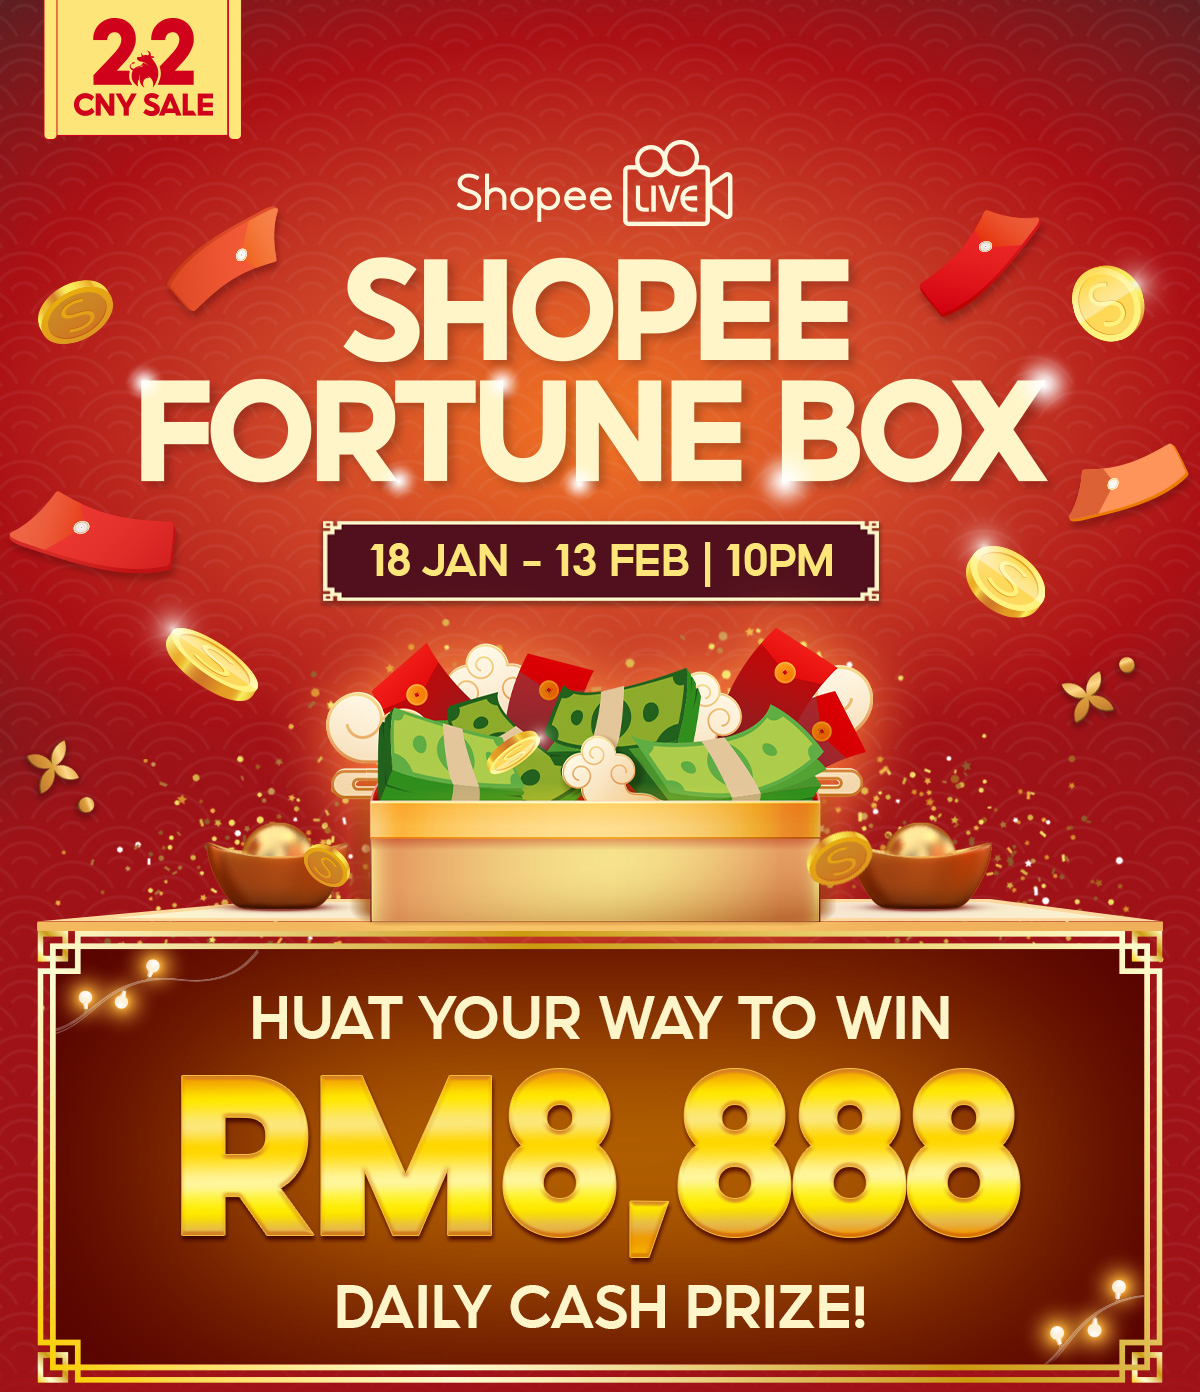 shopee 2.2 cny fortune box